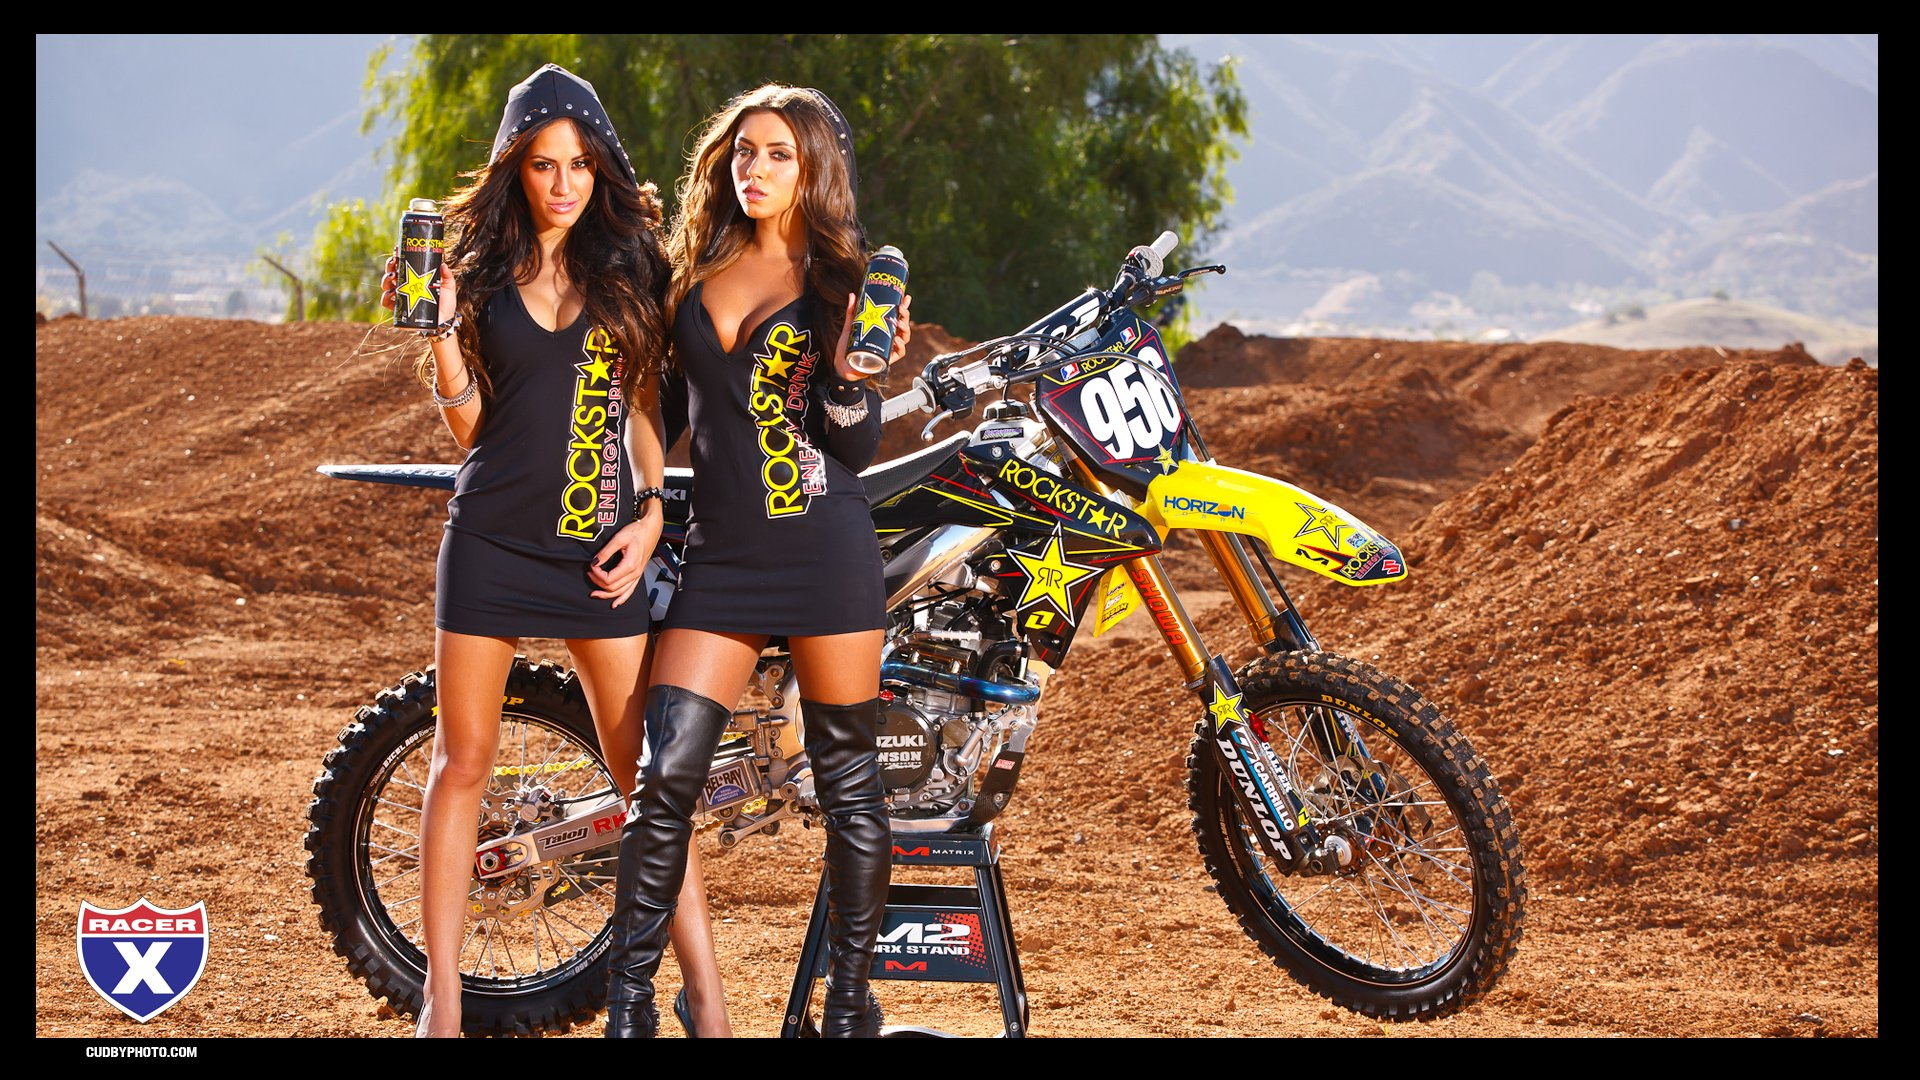 Rockstar Energy Racing Wallpapers   Racer X Online 1920x1080